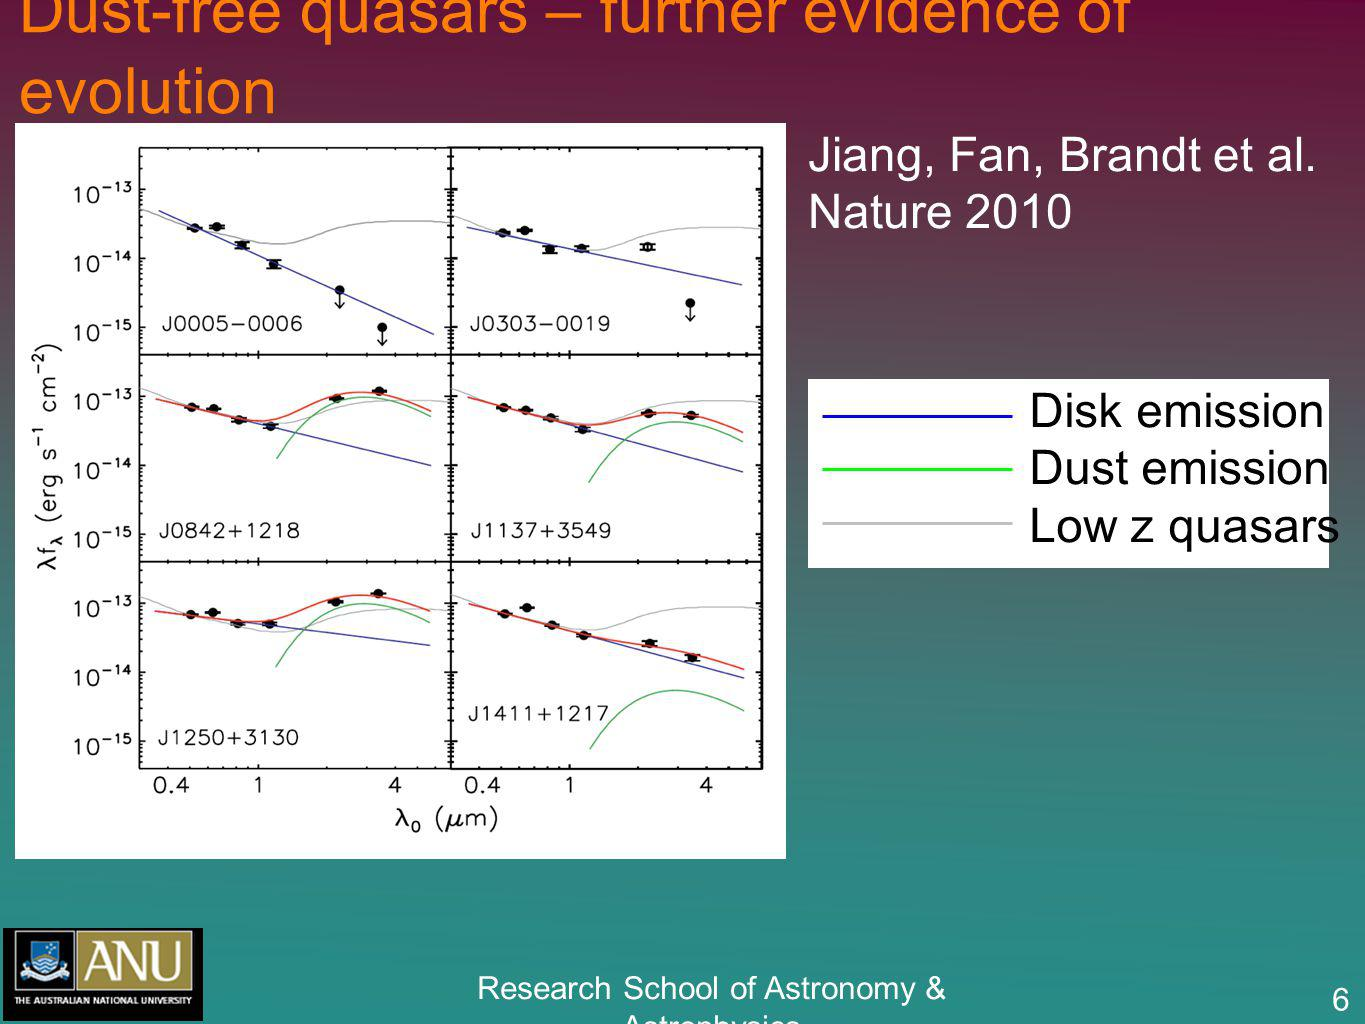 Research School of Astronomy & Astrophysics 7 Correlation between dust and black hole mass Correlation between measure of dust and black hole mass Formation of dust in quasar outflows.